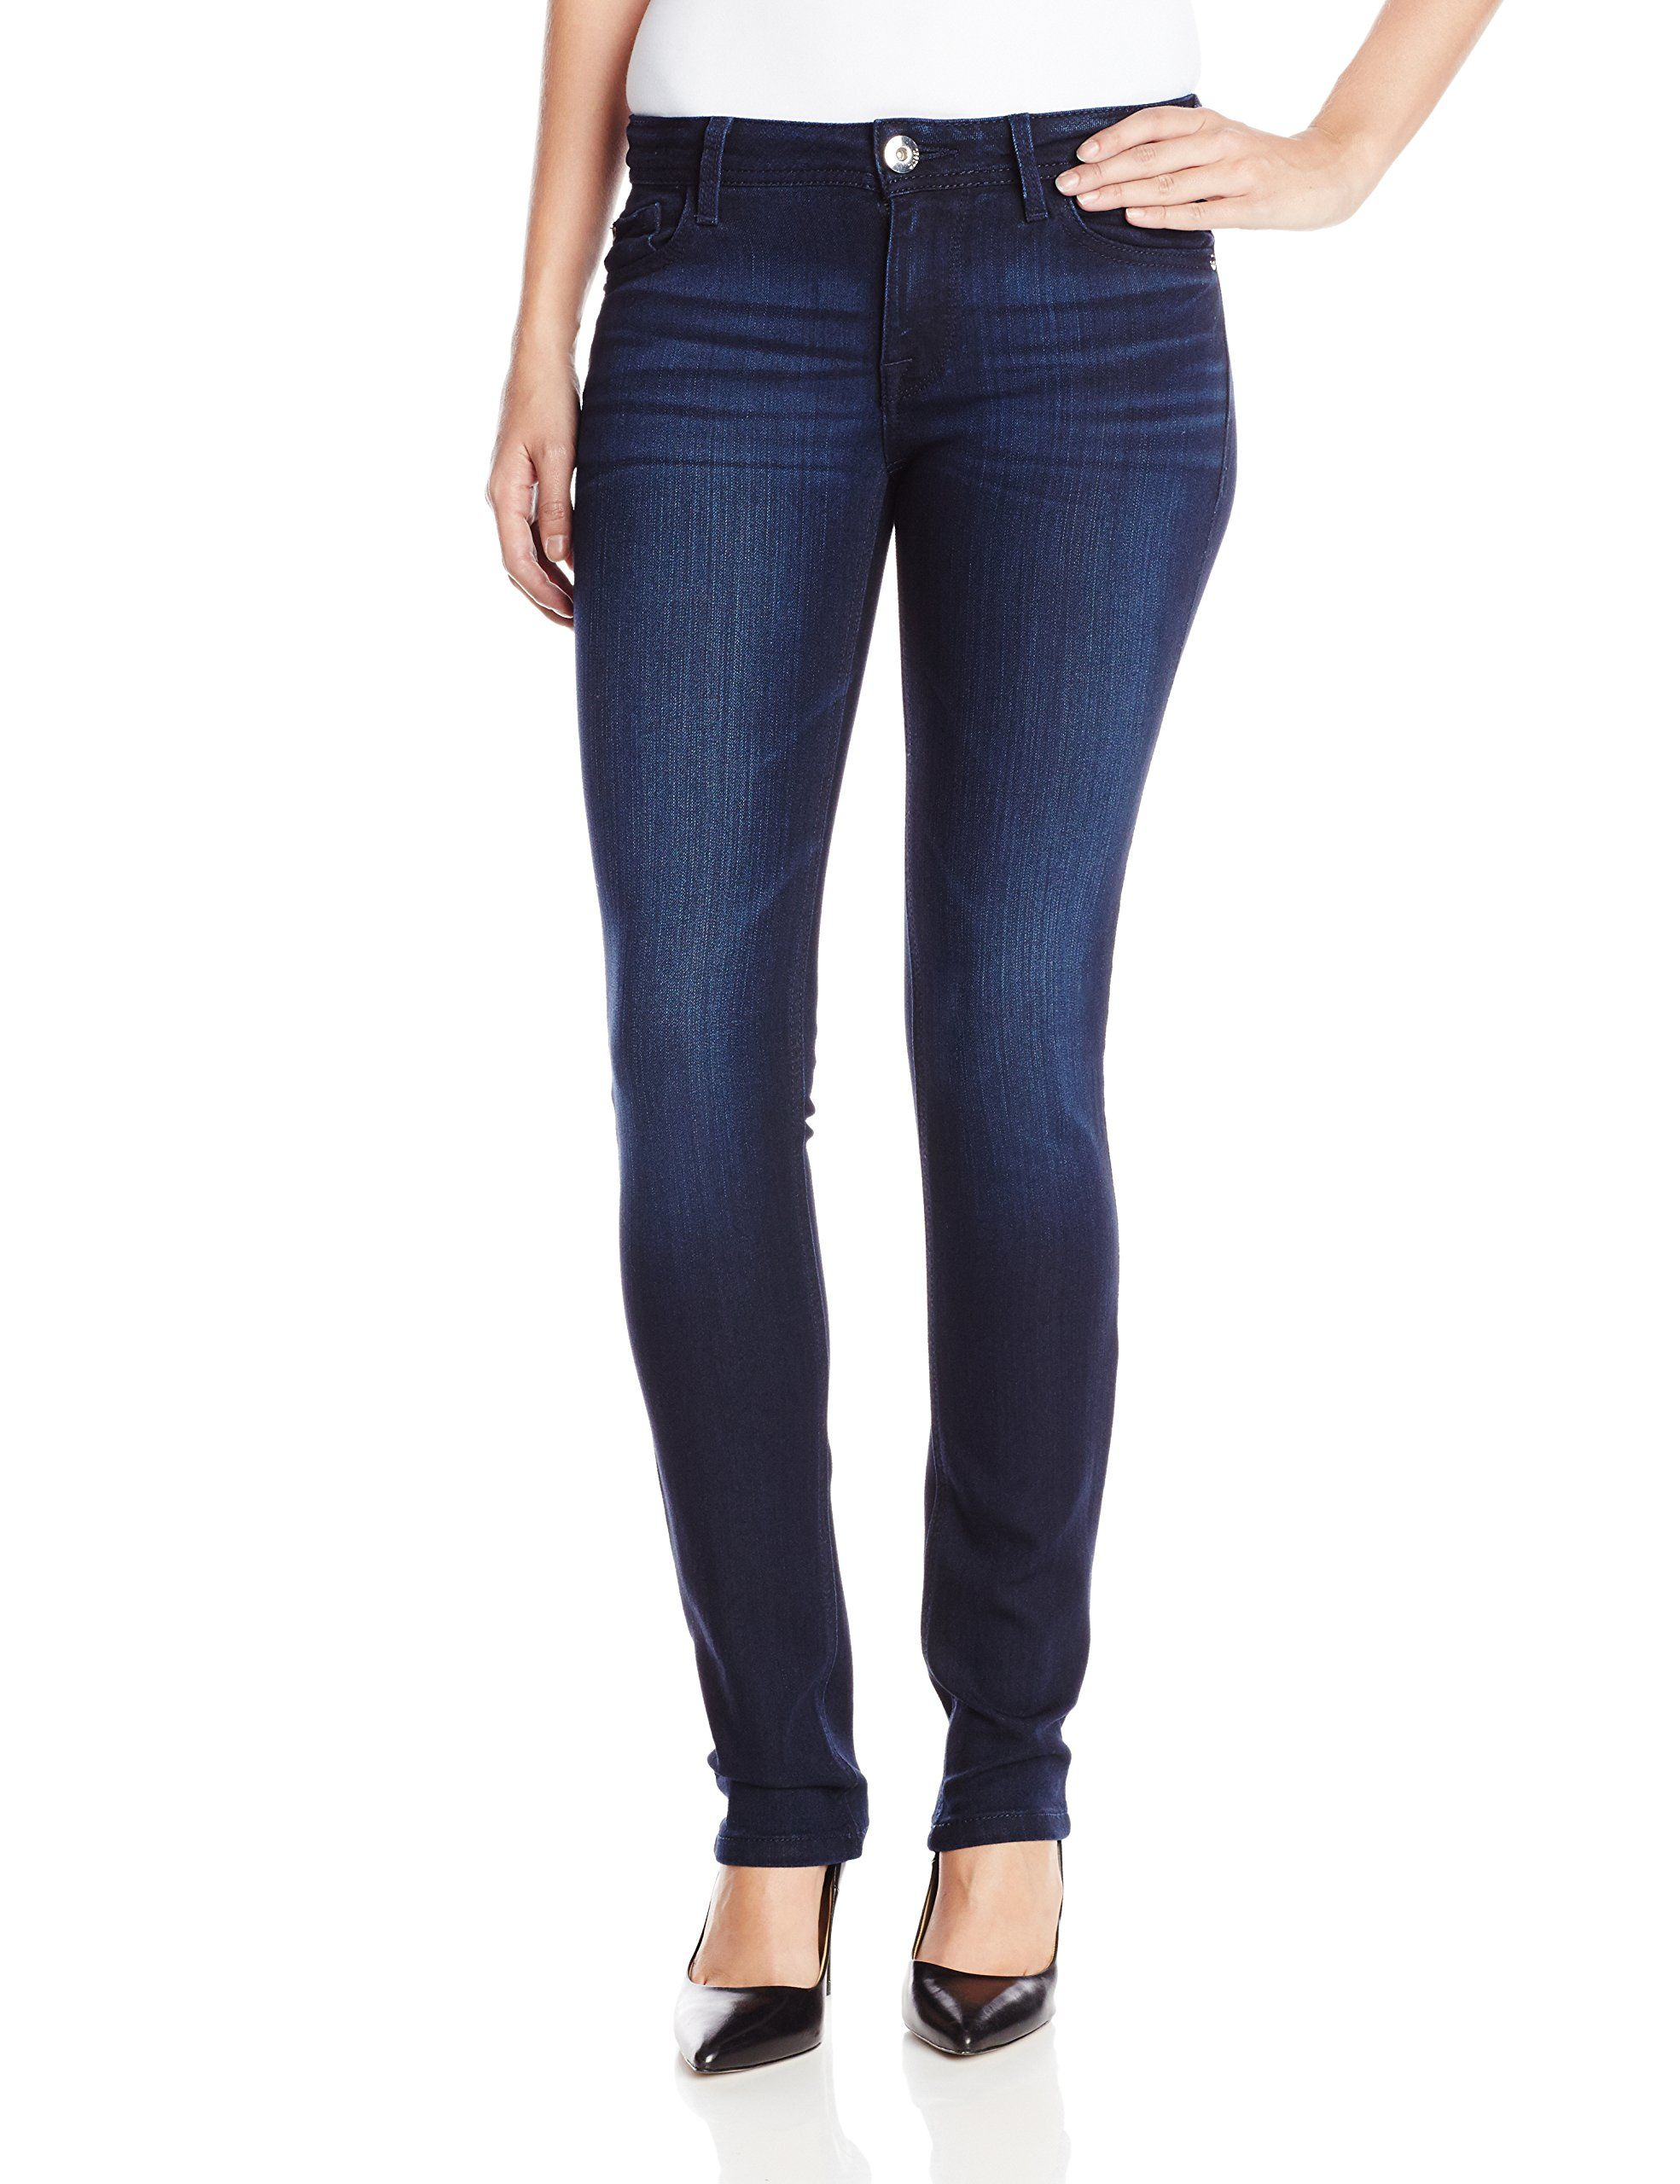 DL1961 Women's Nicky Cigarette Straight Jeans, Wooster, 30. Patented DL-Pro Modal X-Fit fabric. High performance denim with 360 degrees of movement that will never sag, bag or lose its shape.